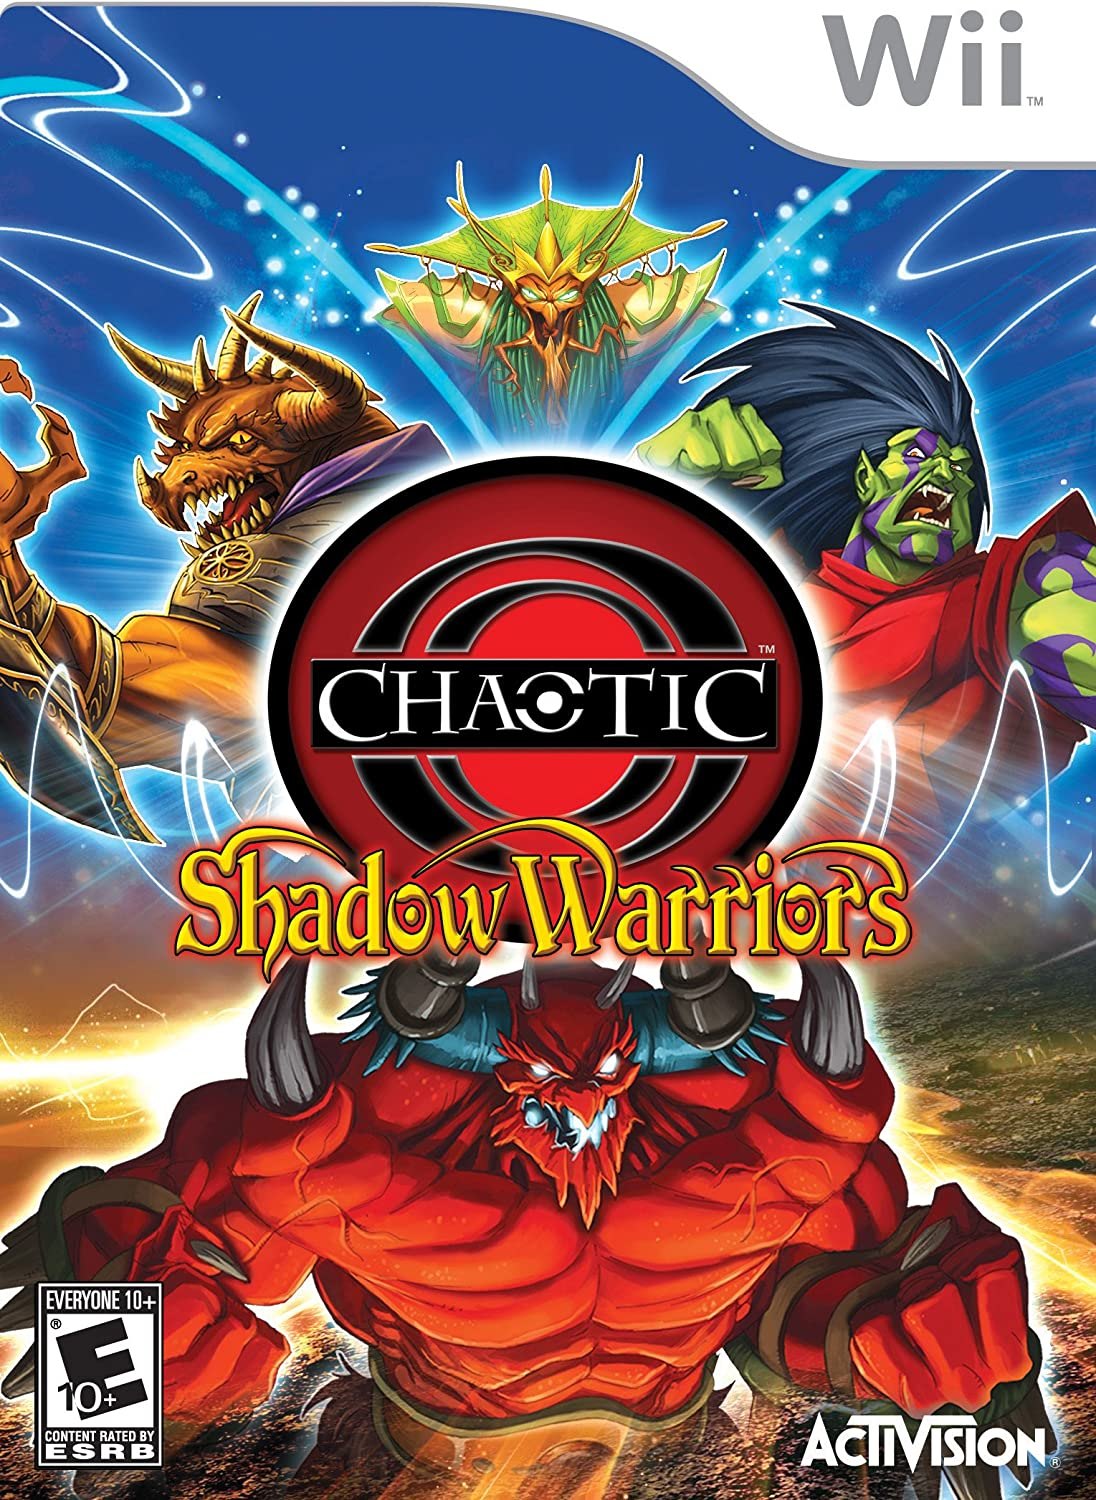 Image result for chaotic shadow warriors wii